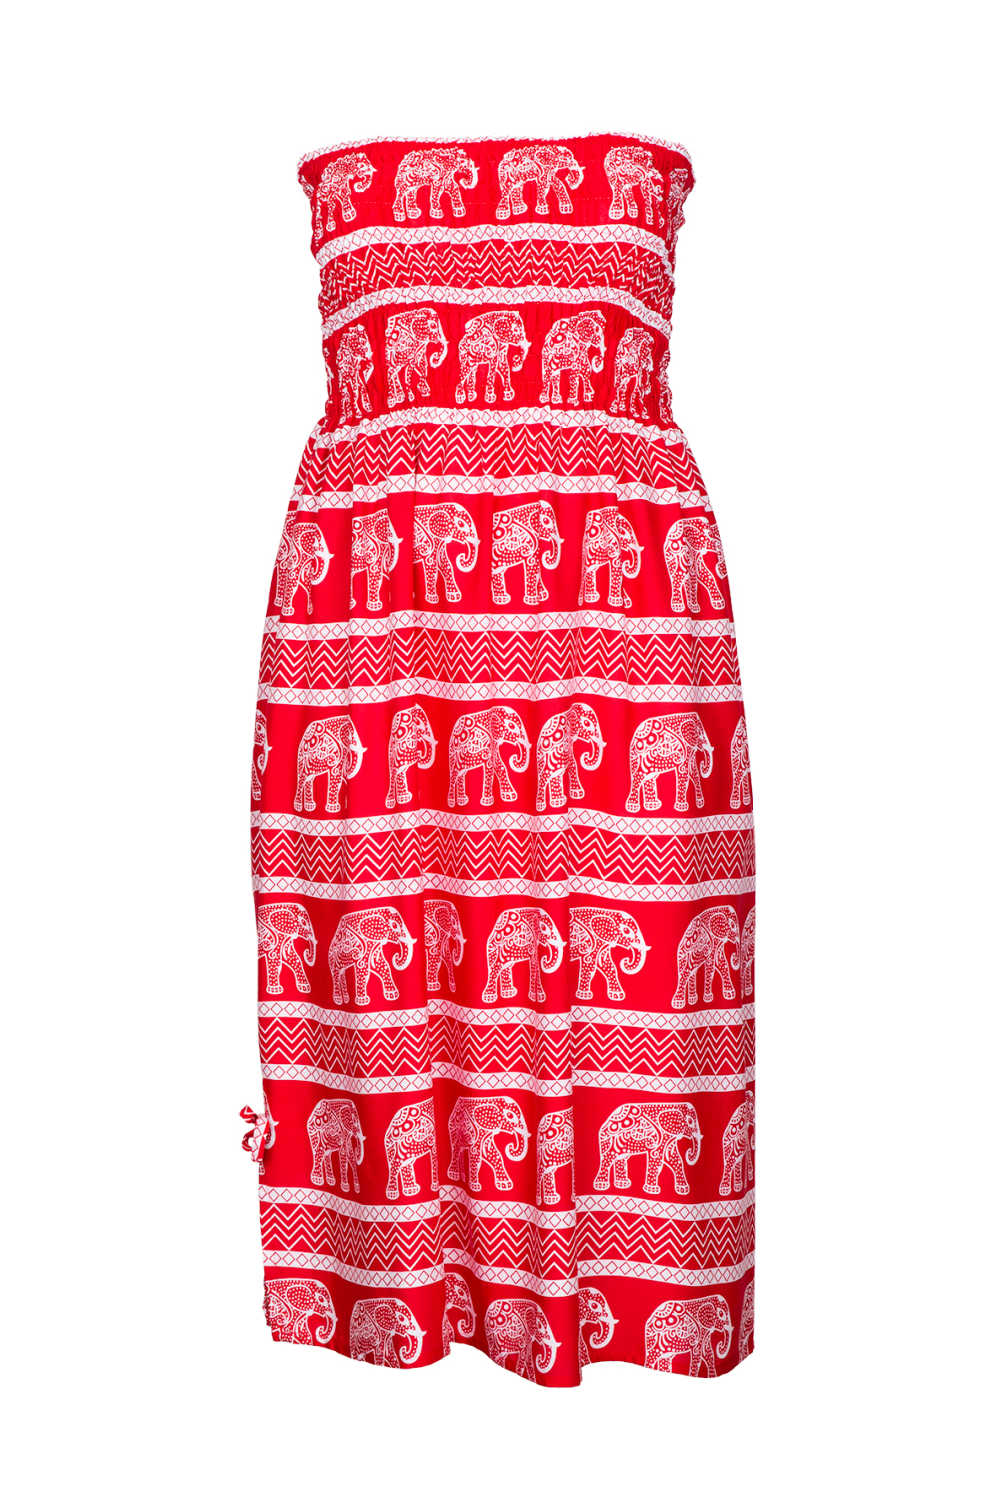 boob-tube-dress-red-white-elephant-print